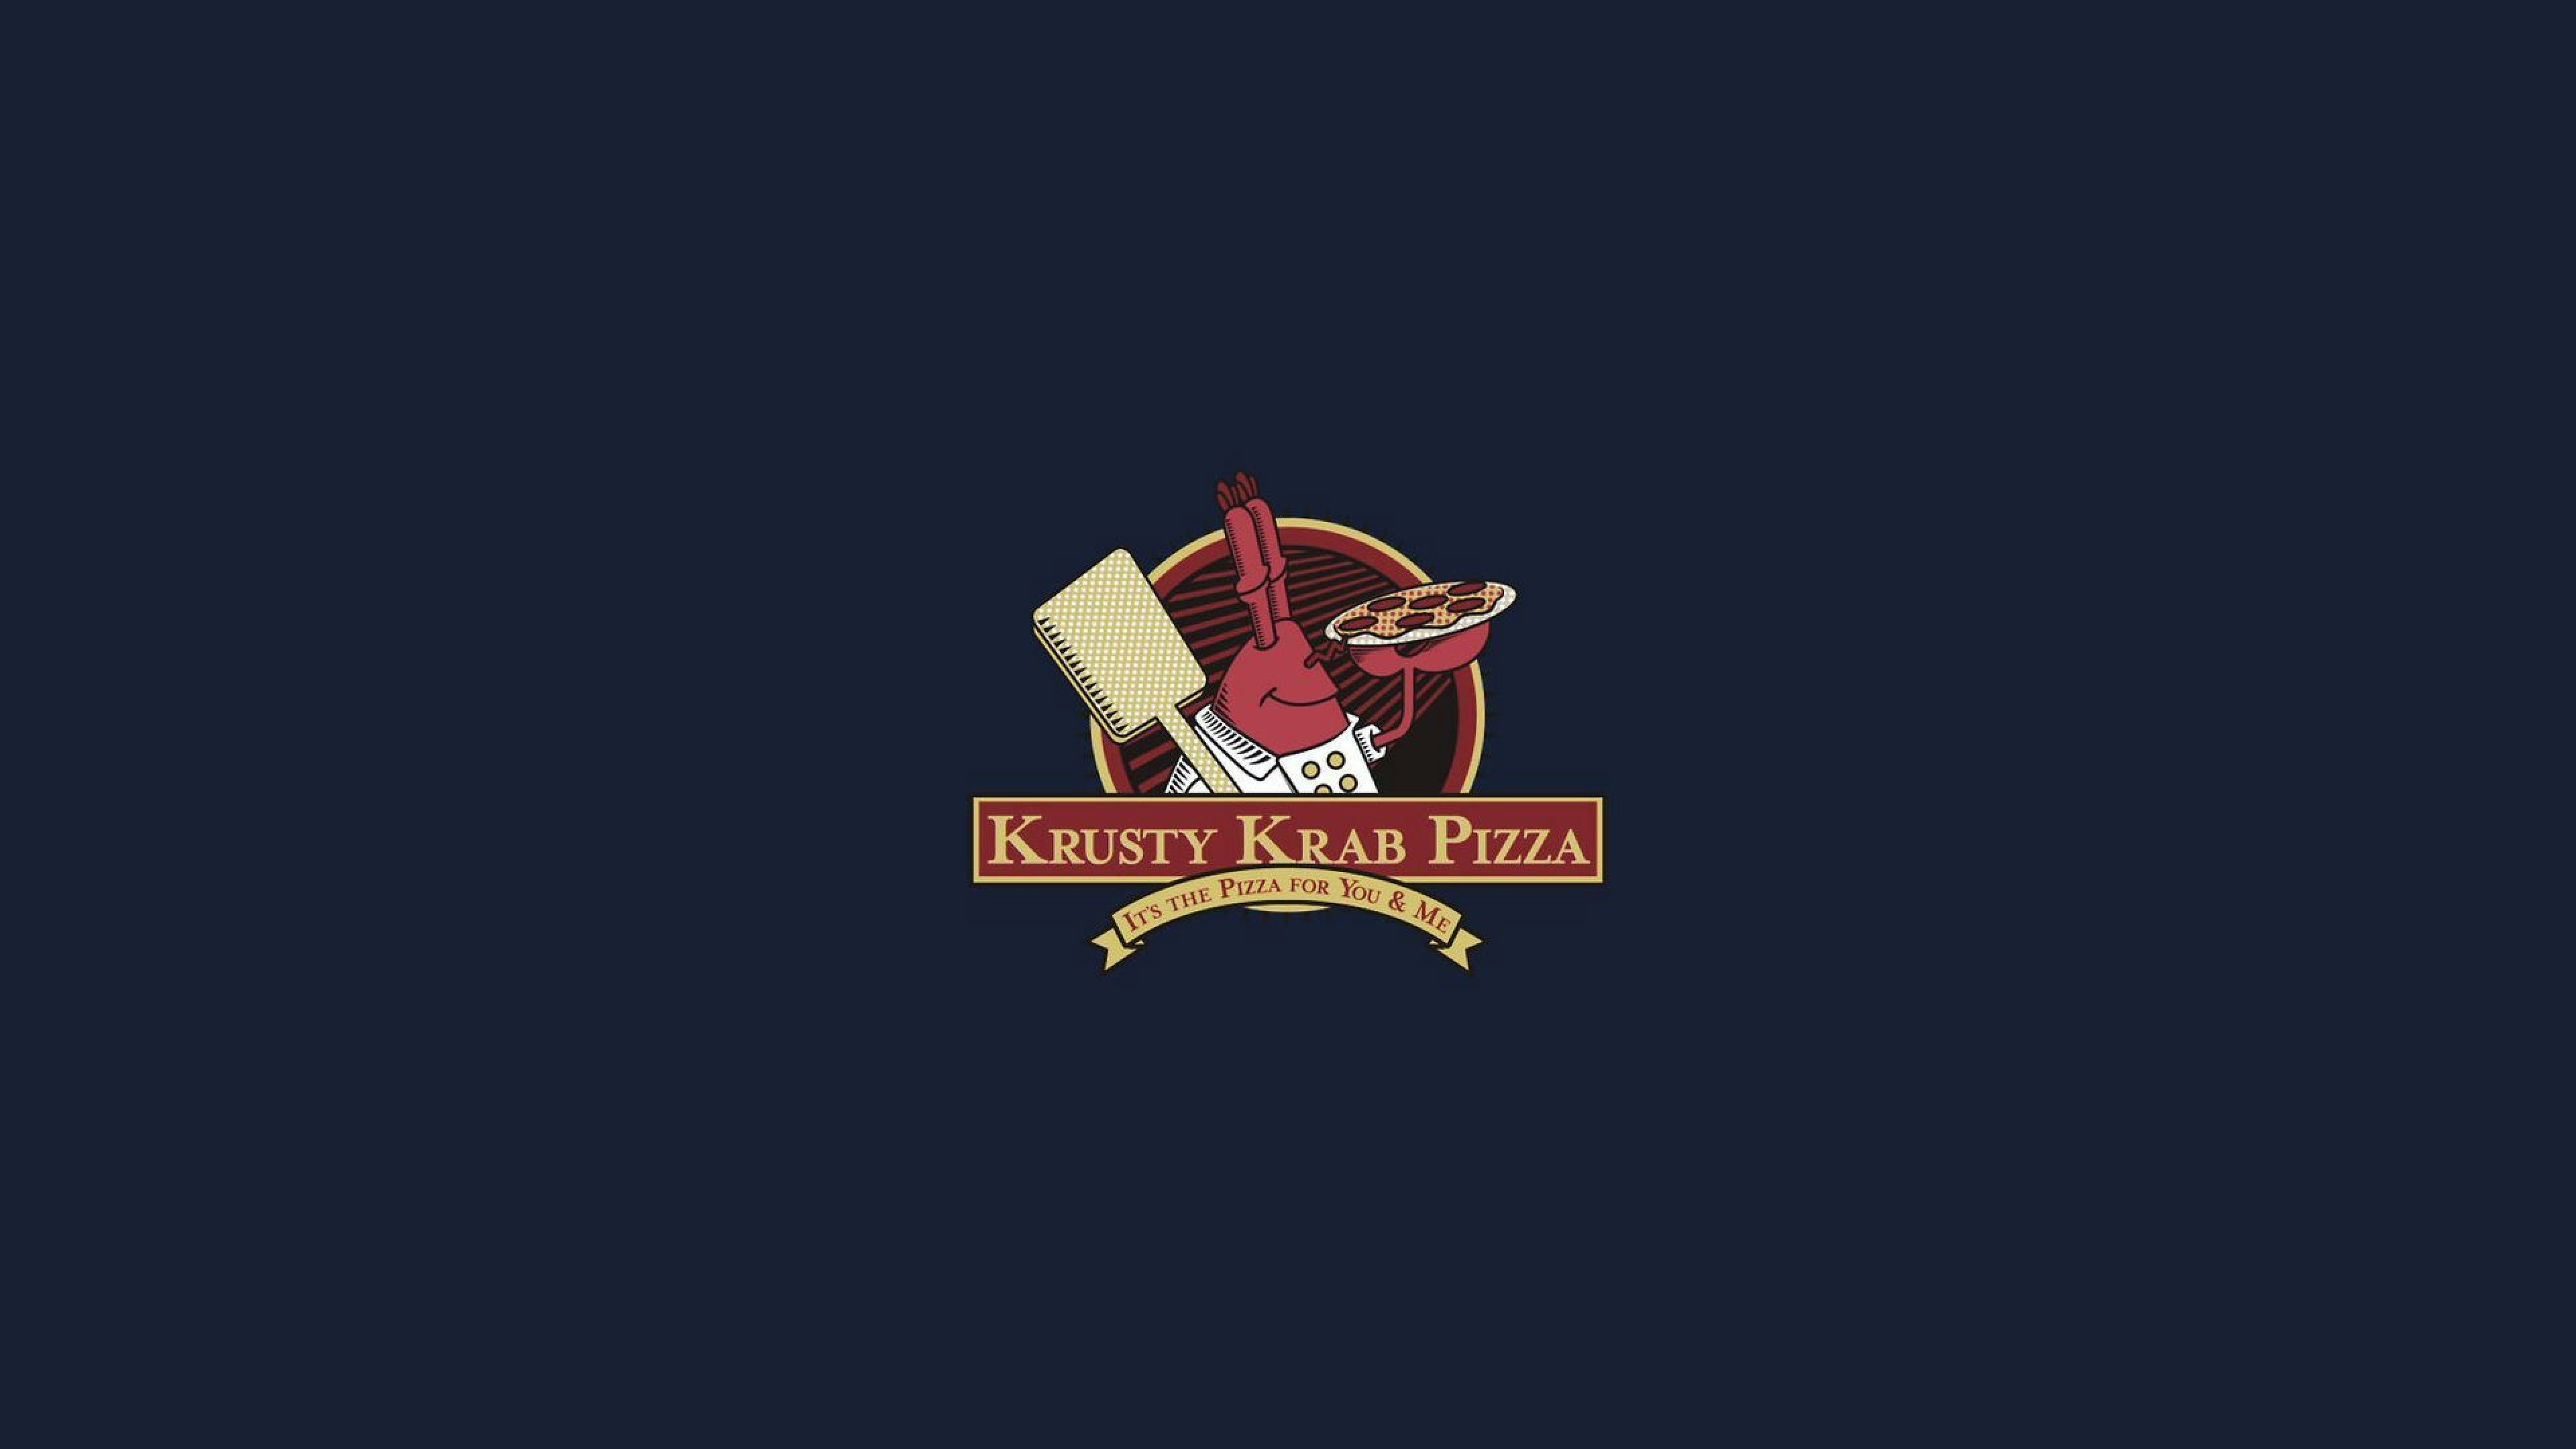 3840x2160 Preview Wallpaper Spongebob Squarepants Mr Krabs Logo Pizza